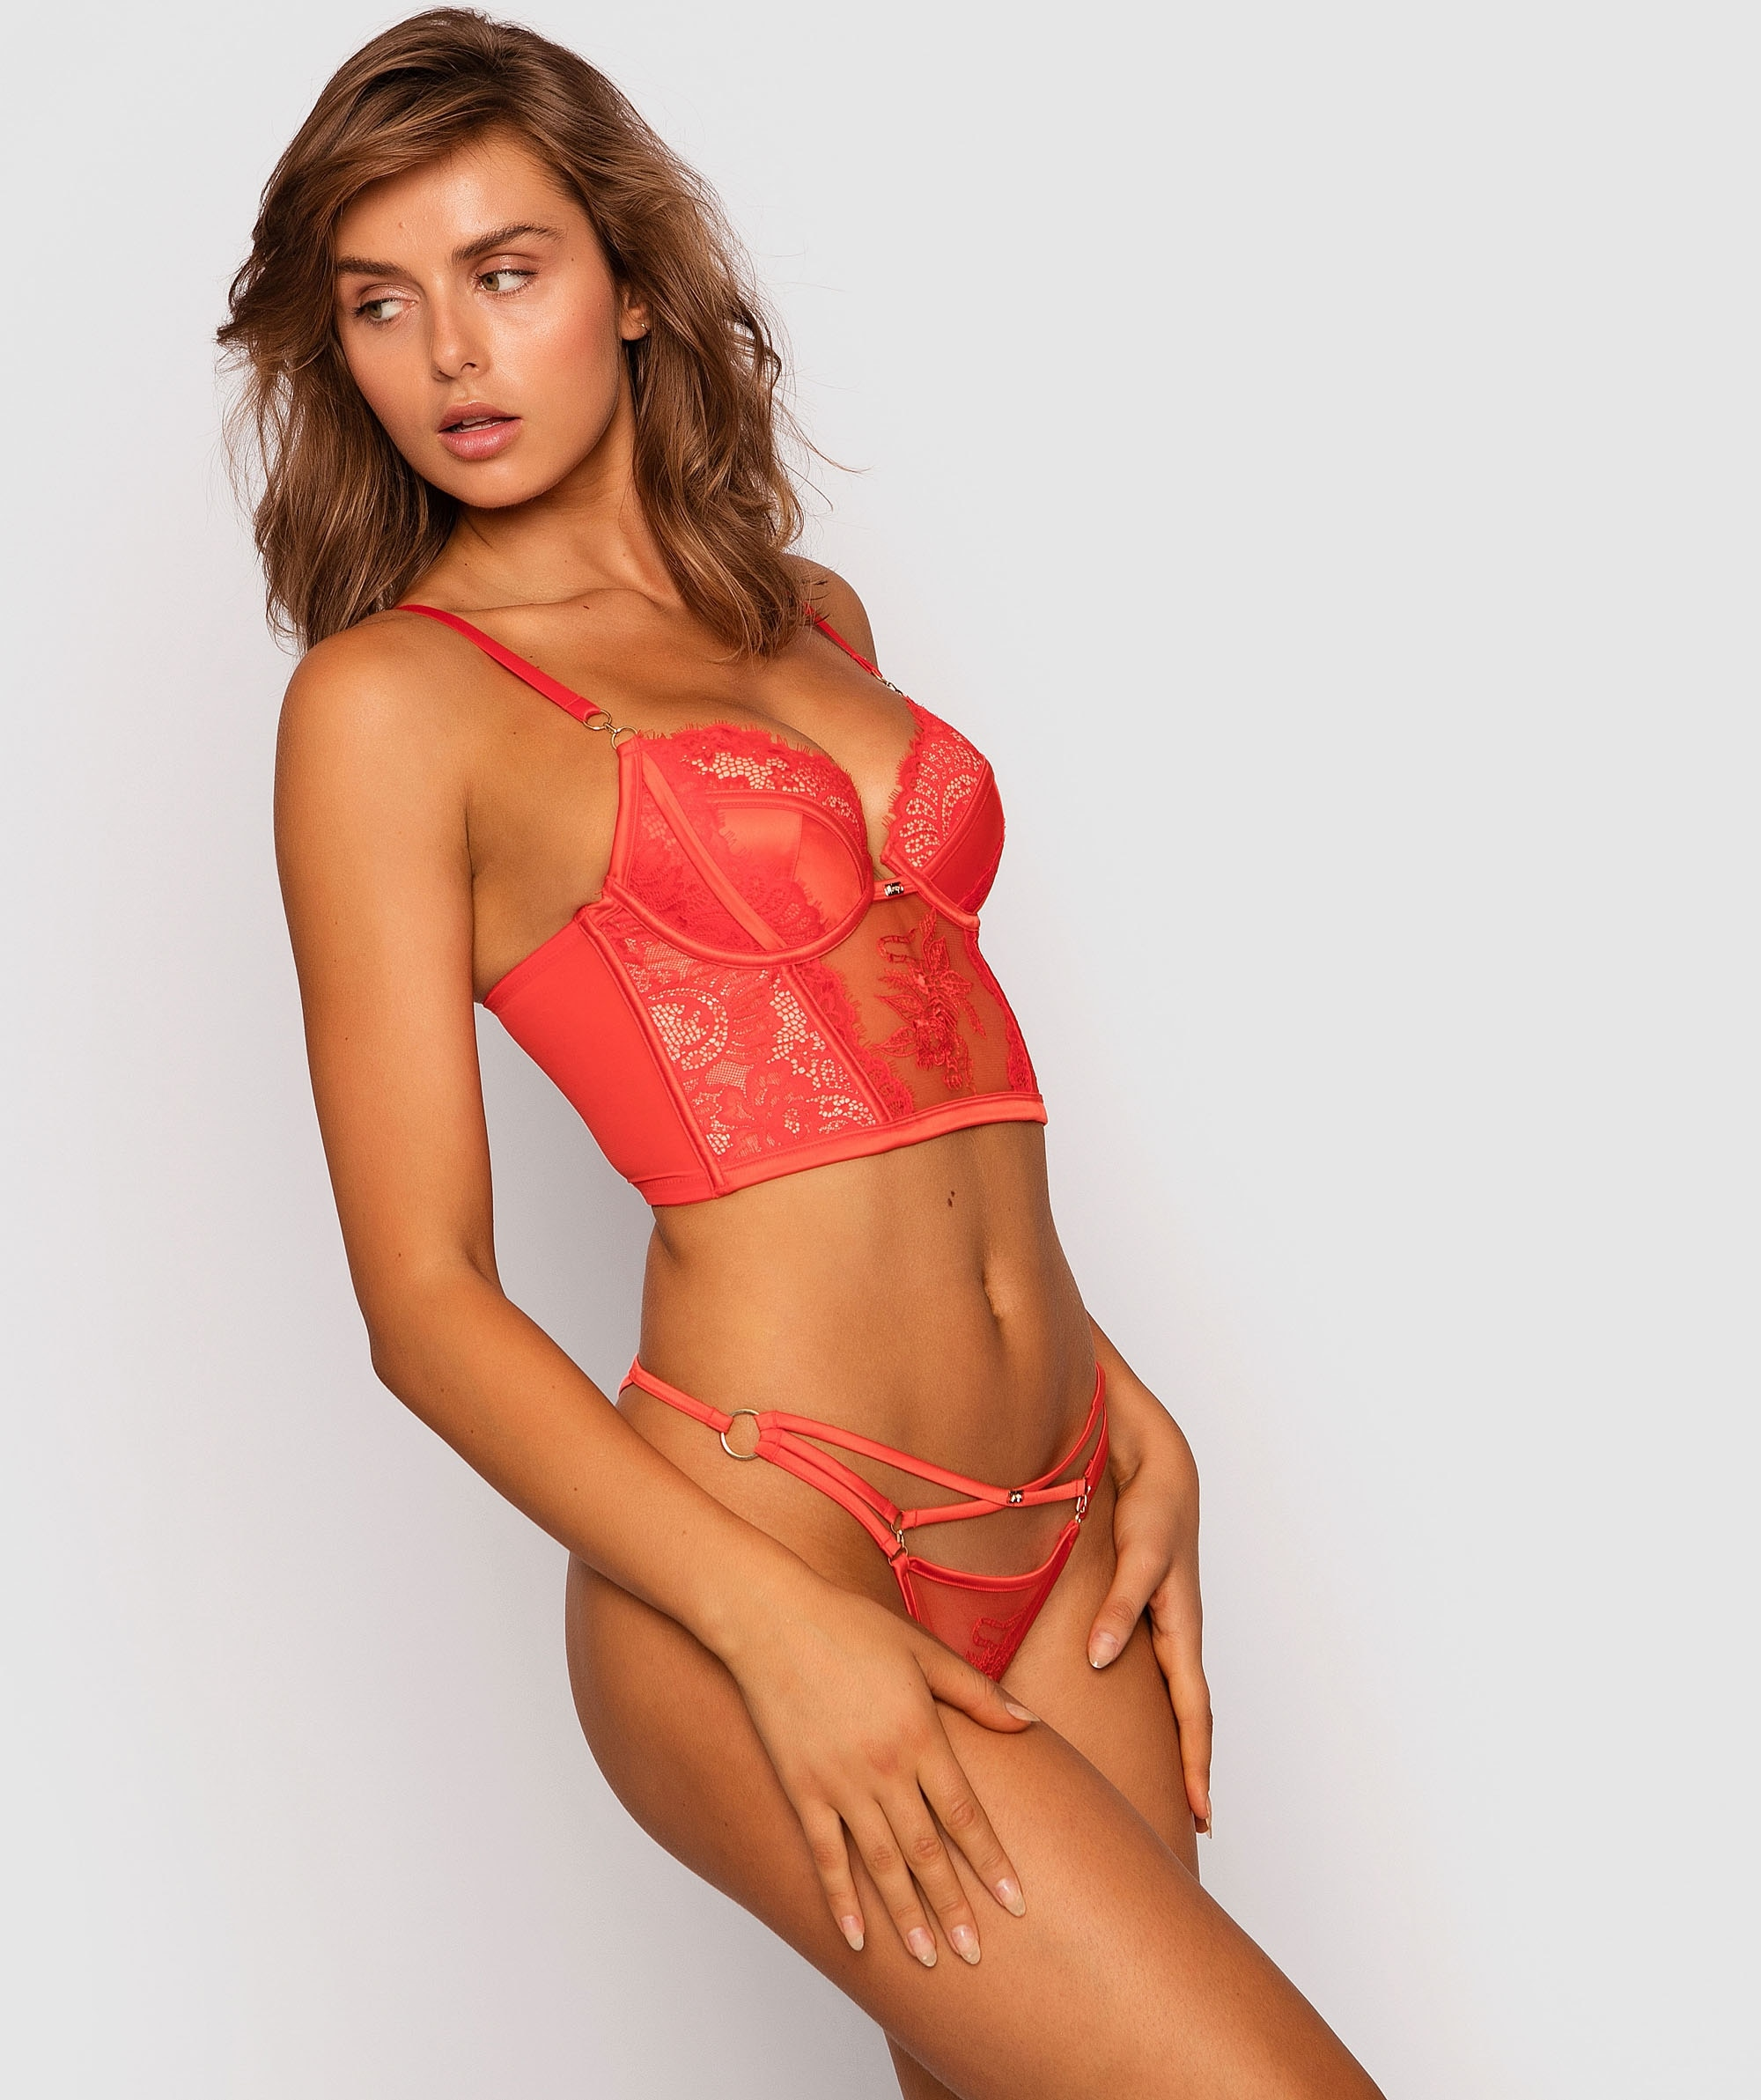 Vamp Wild Thoughts V-String Knicker - Red/Nude